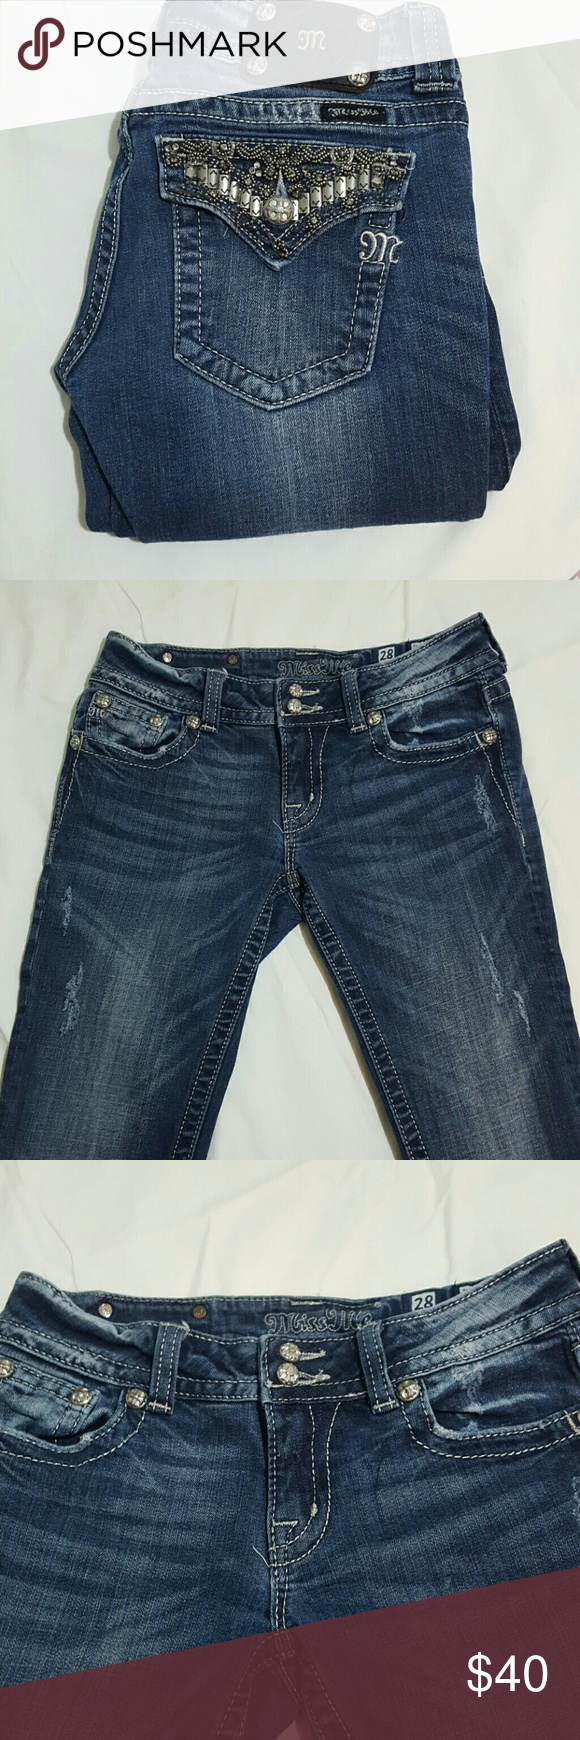 """Miss Me Bootcut Miss Me Bootcut jeans. Medium wash. Distressed.  Style JP4656B9 There are a few missing beads on the back pockets. Price reflects condition.  98% Cotton  2%Elastan  YA3  Unstretched Flat Measurements  Waist 14.5 Rise 7"""" Inseam 33"""" Miss Me Jeans Boot Cut"""